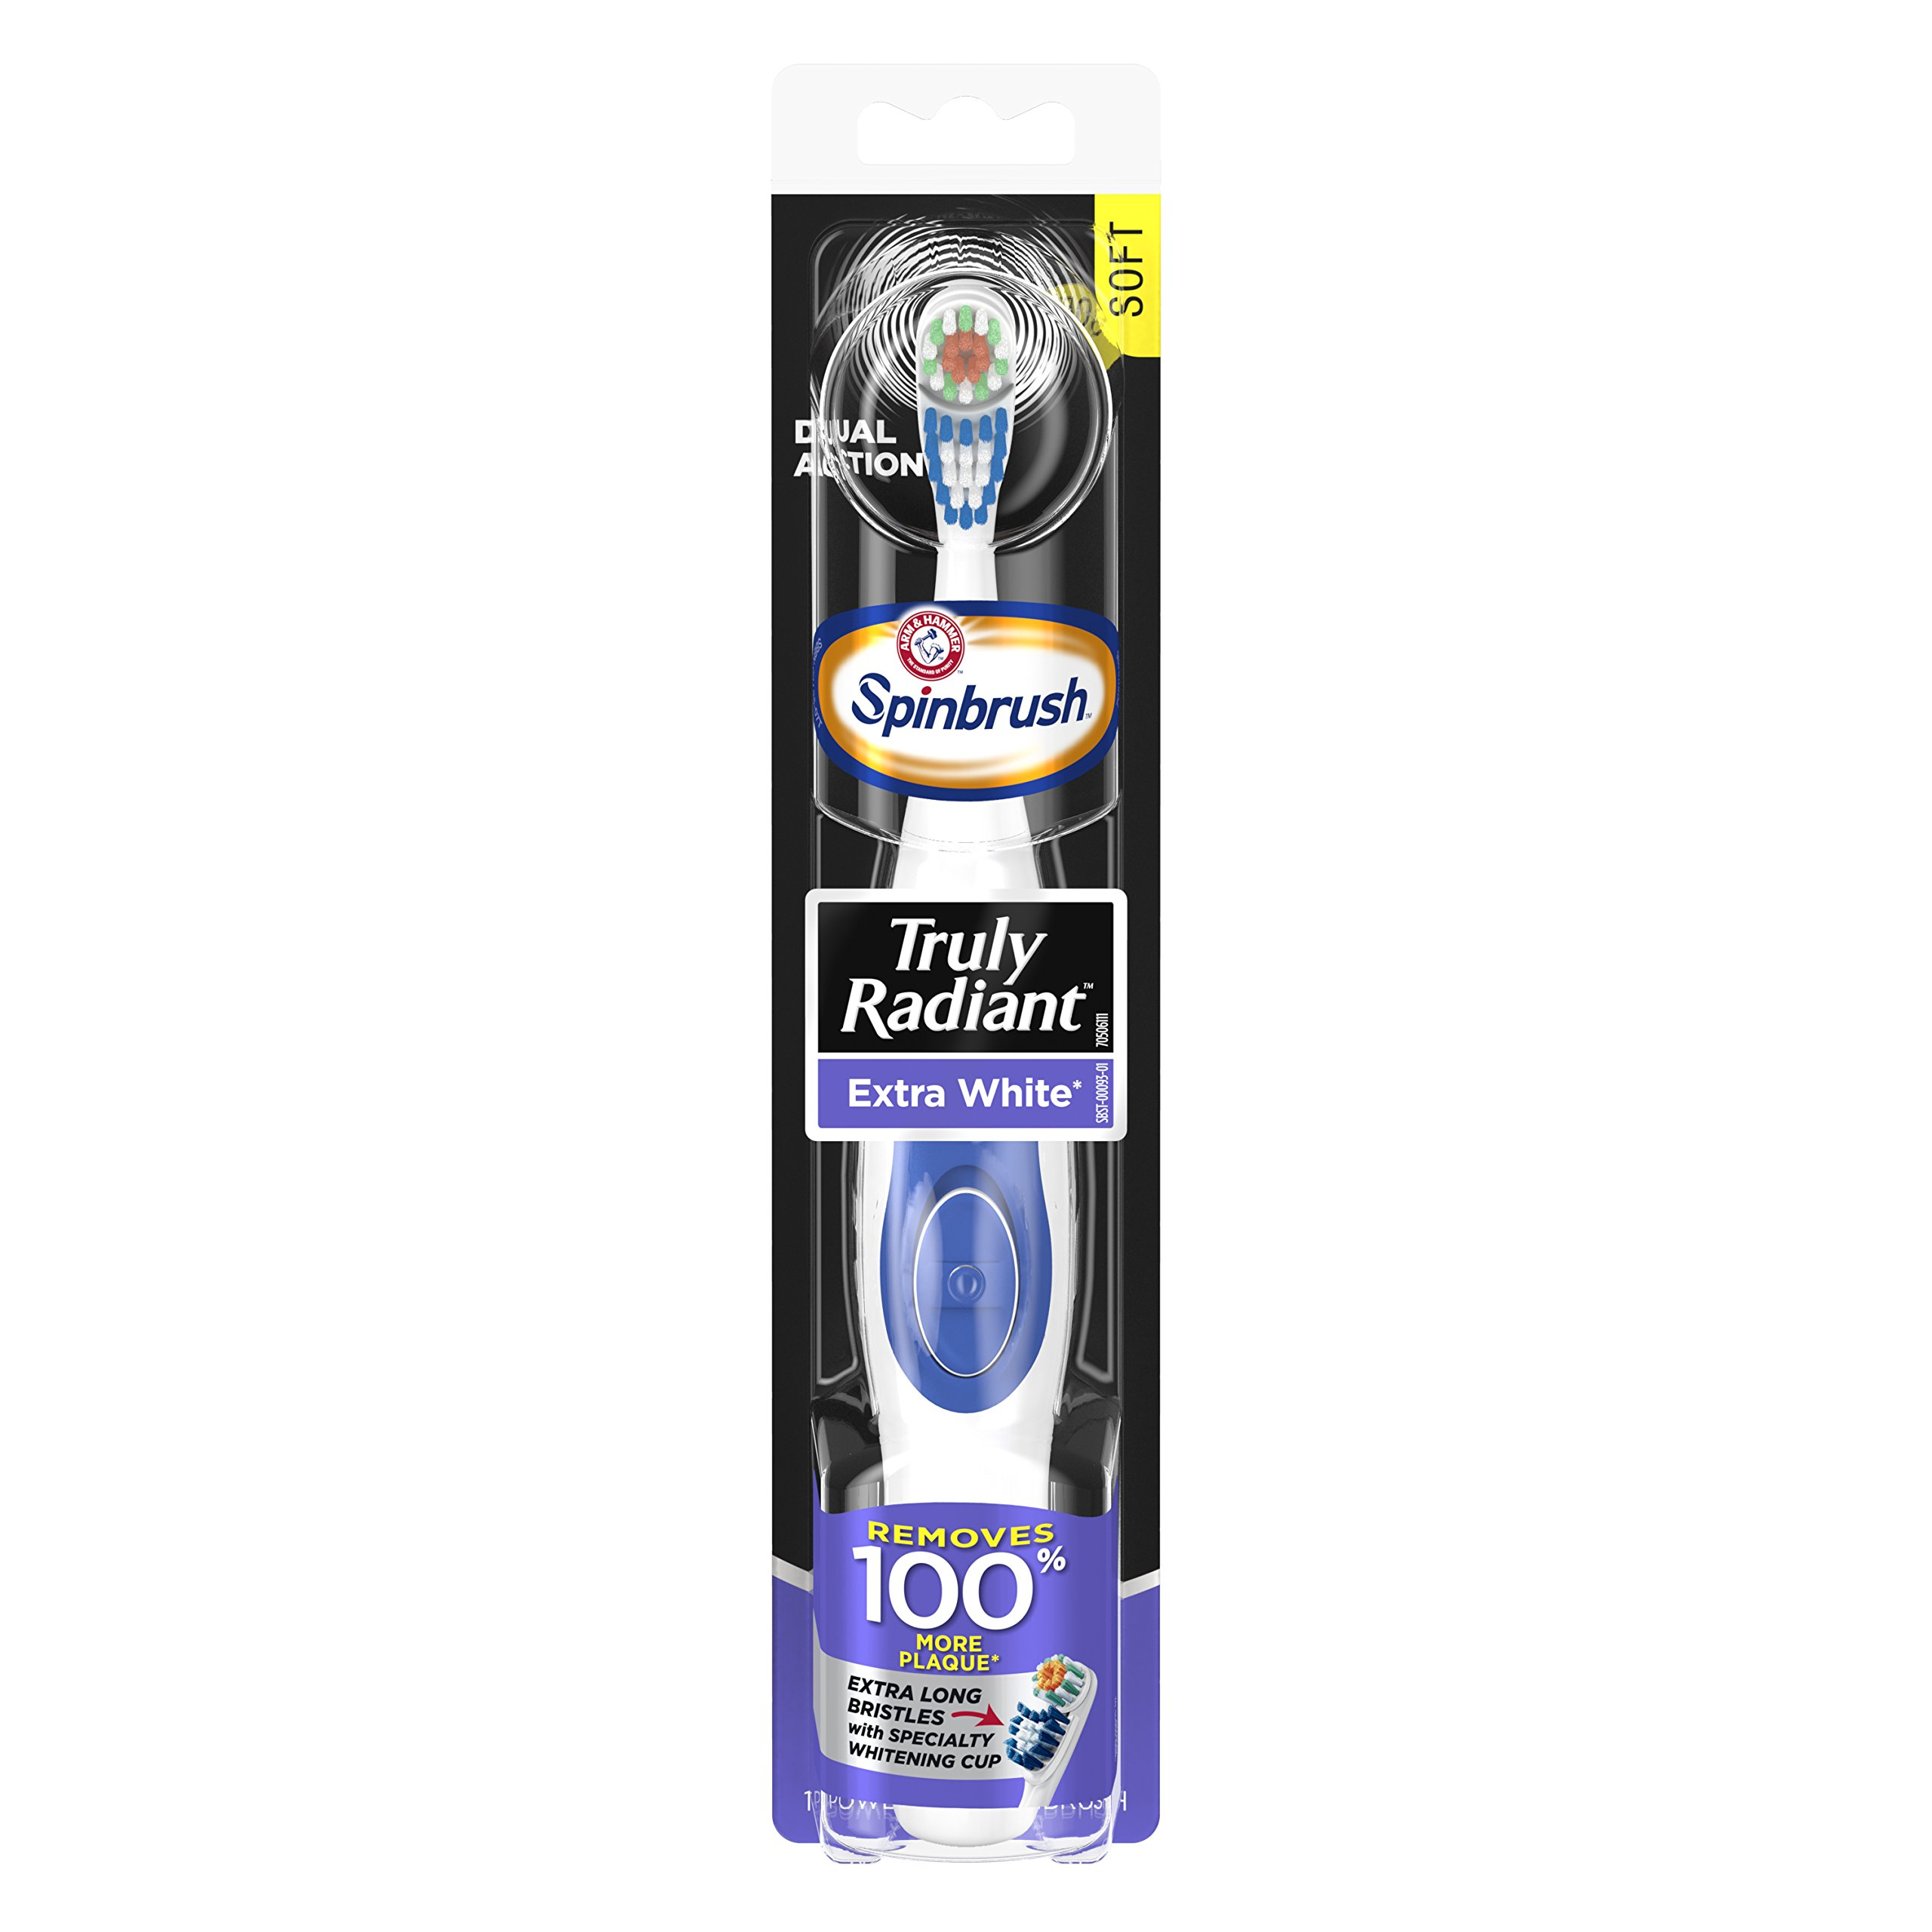 Spinbrush Truly Radiant Extra White Battery Toothbrush